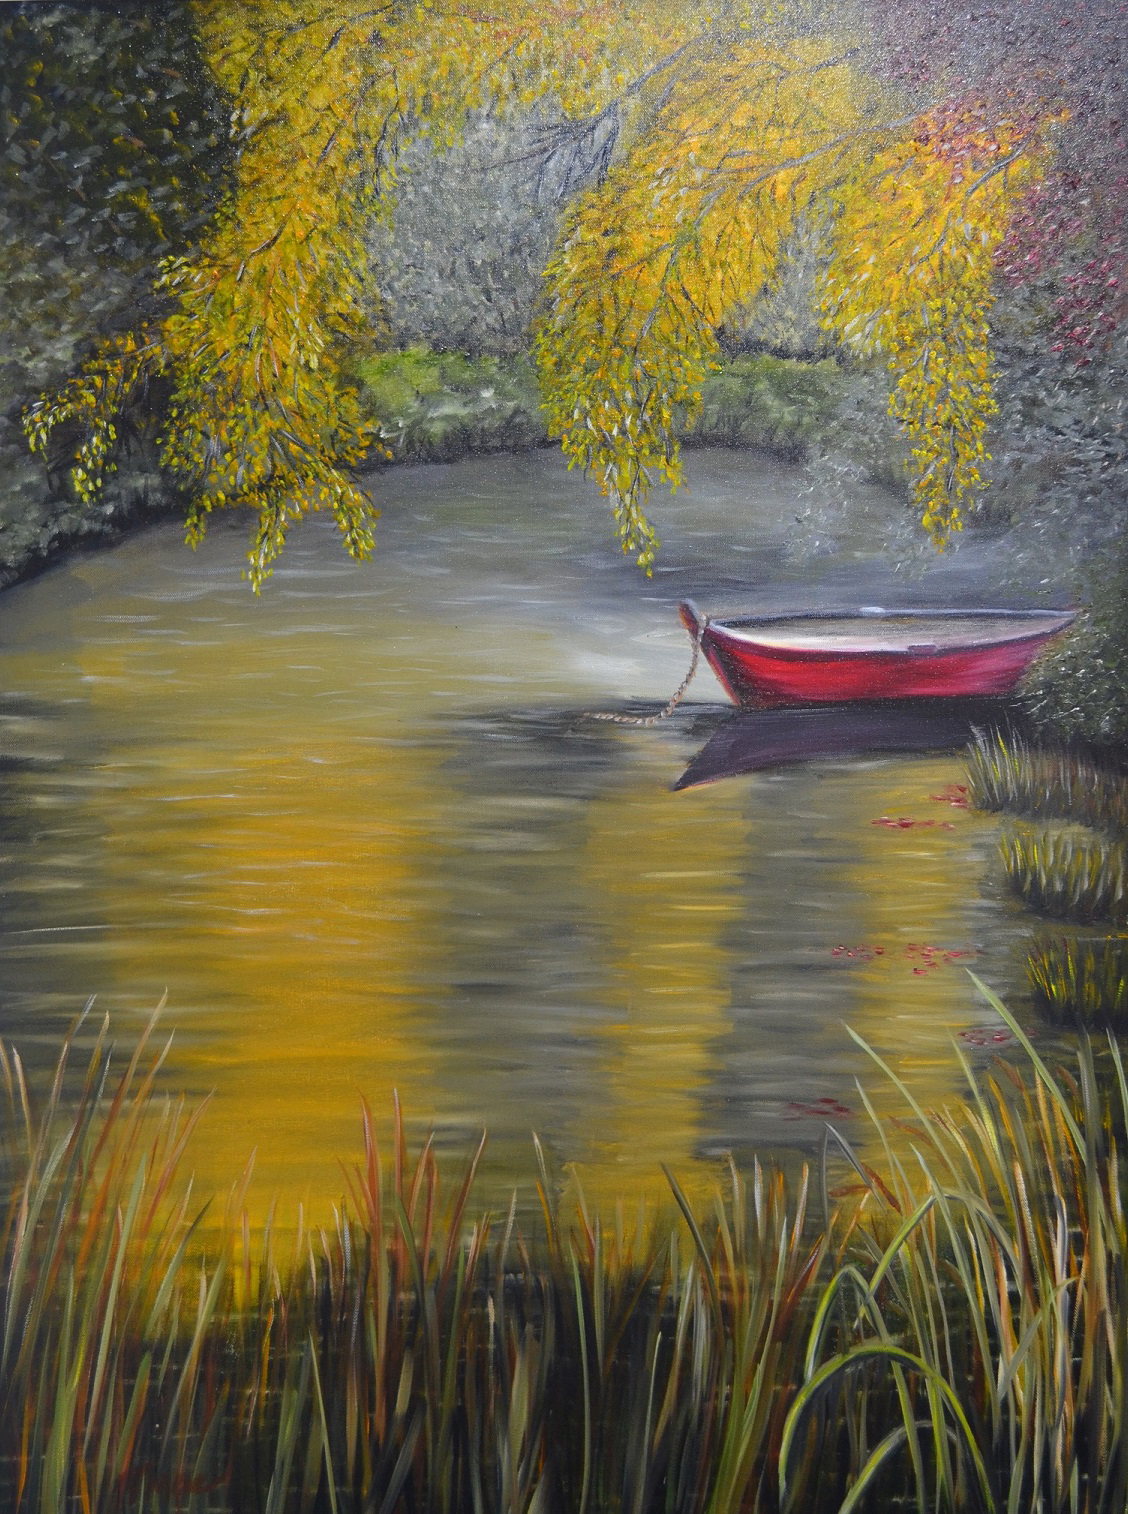 """""""Canoe On Golden Pond"""" by Teresa McCarthy, 30x40in, oil on canvas (2016)"""